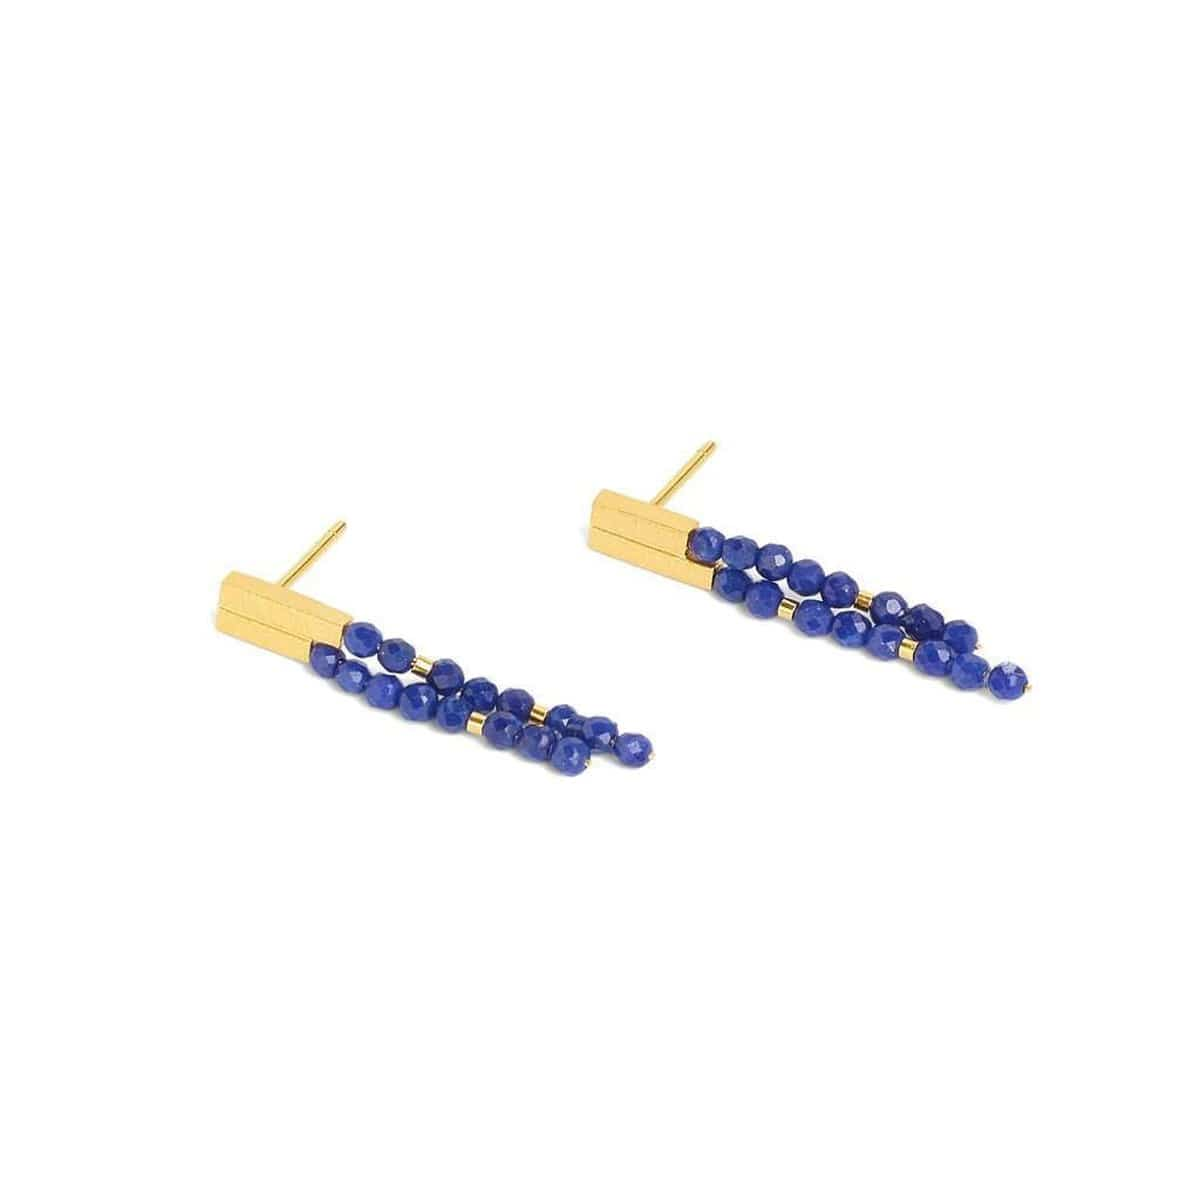 Yanizzi Lapis Lazuli Earrings - 15787236